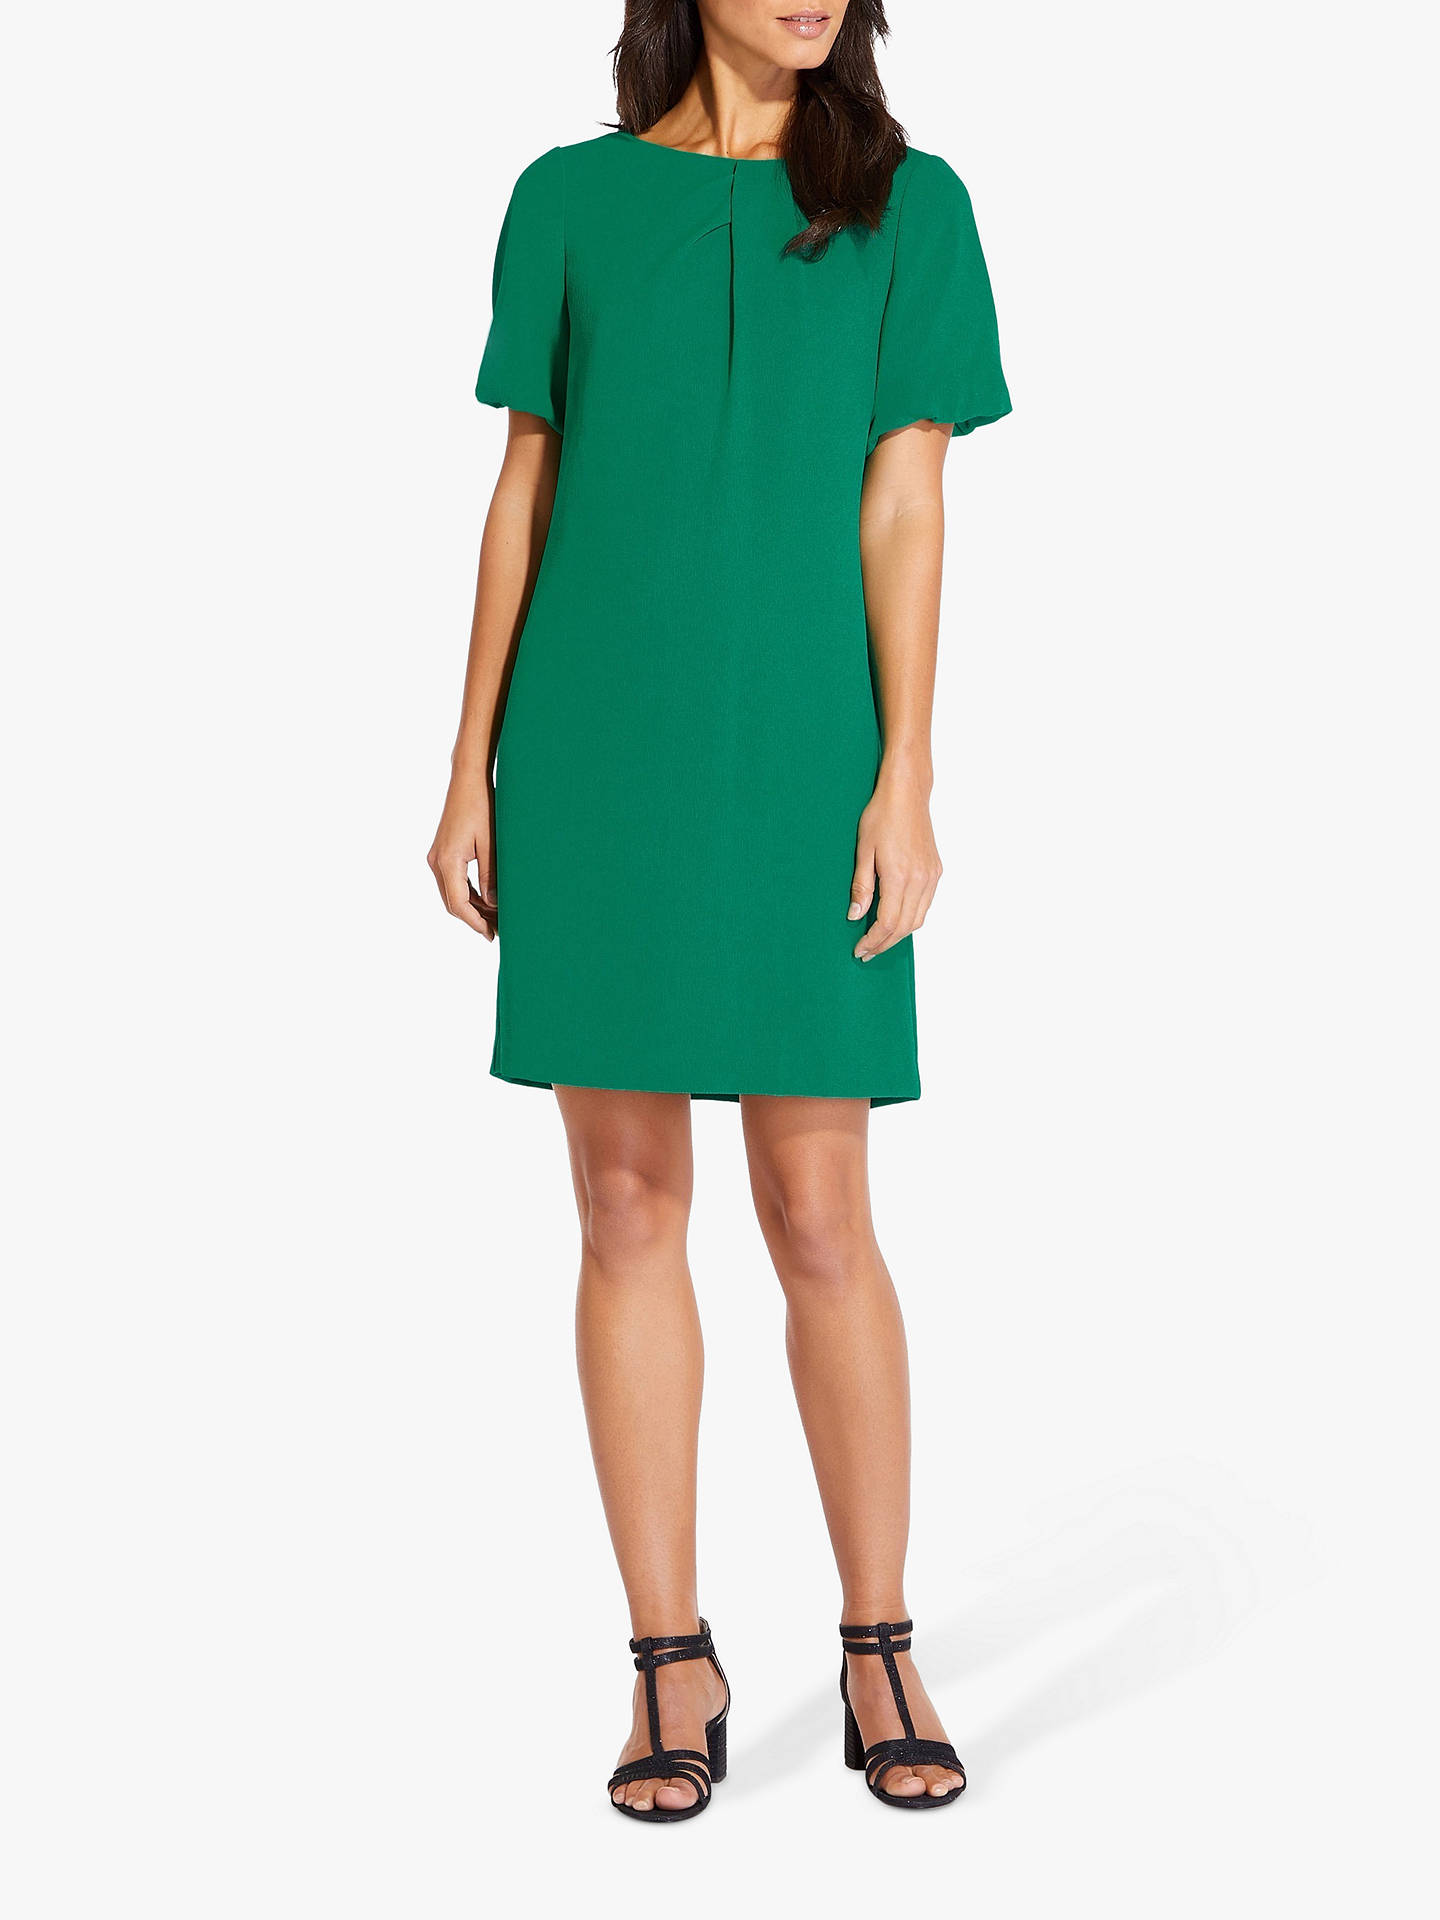 bde87e97 Buy Adrianna Papell Plus Puff Sleeve Shift Dress, Emerald, 20 Online at  johnlewis.